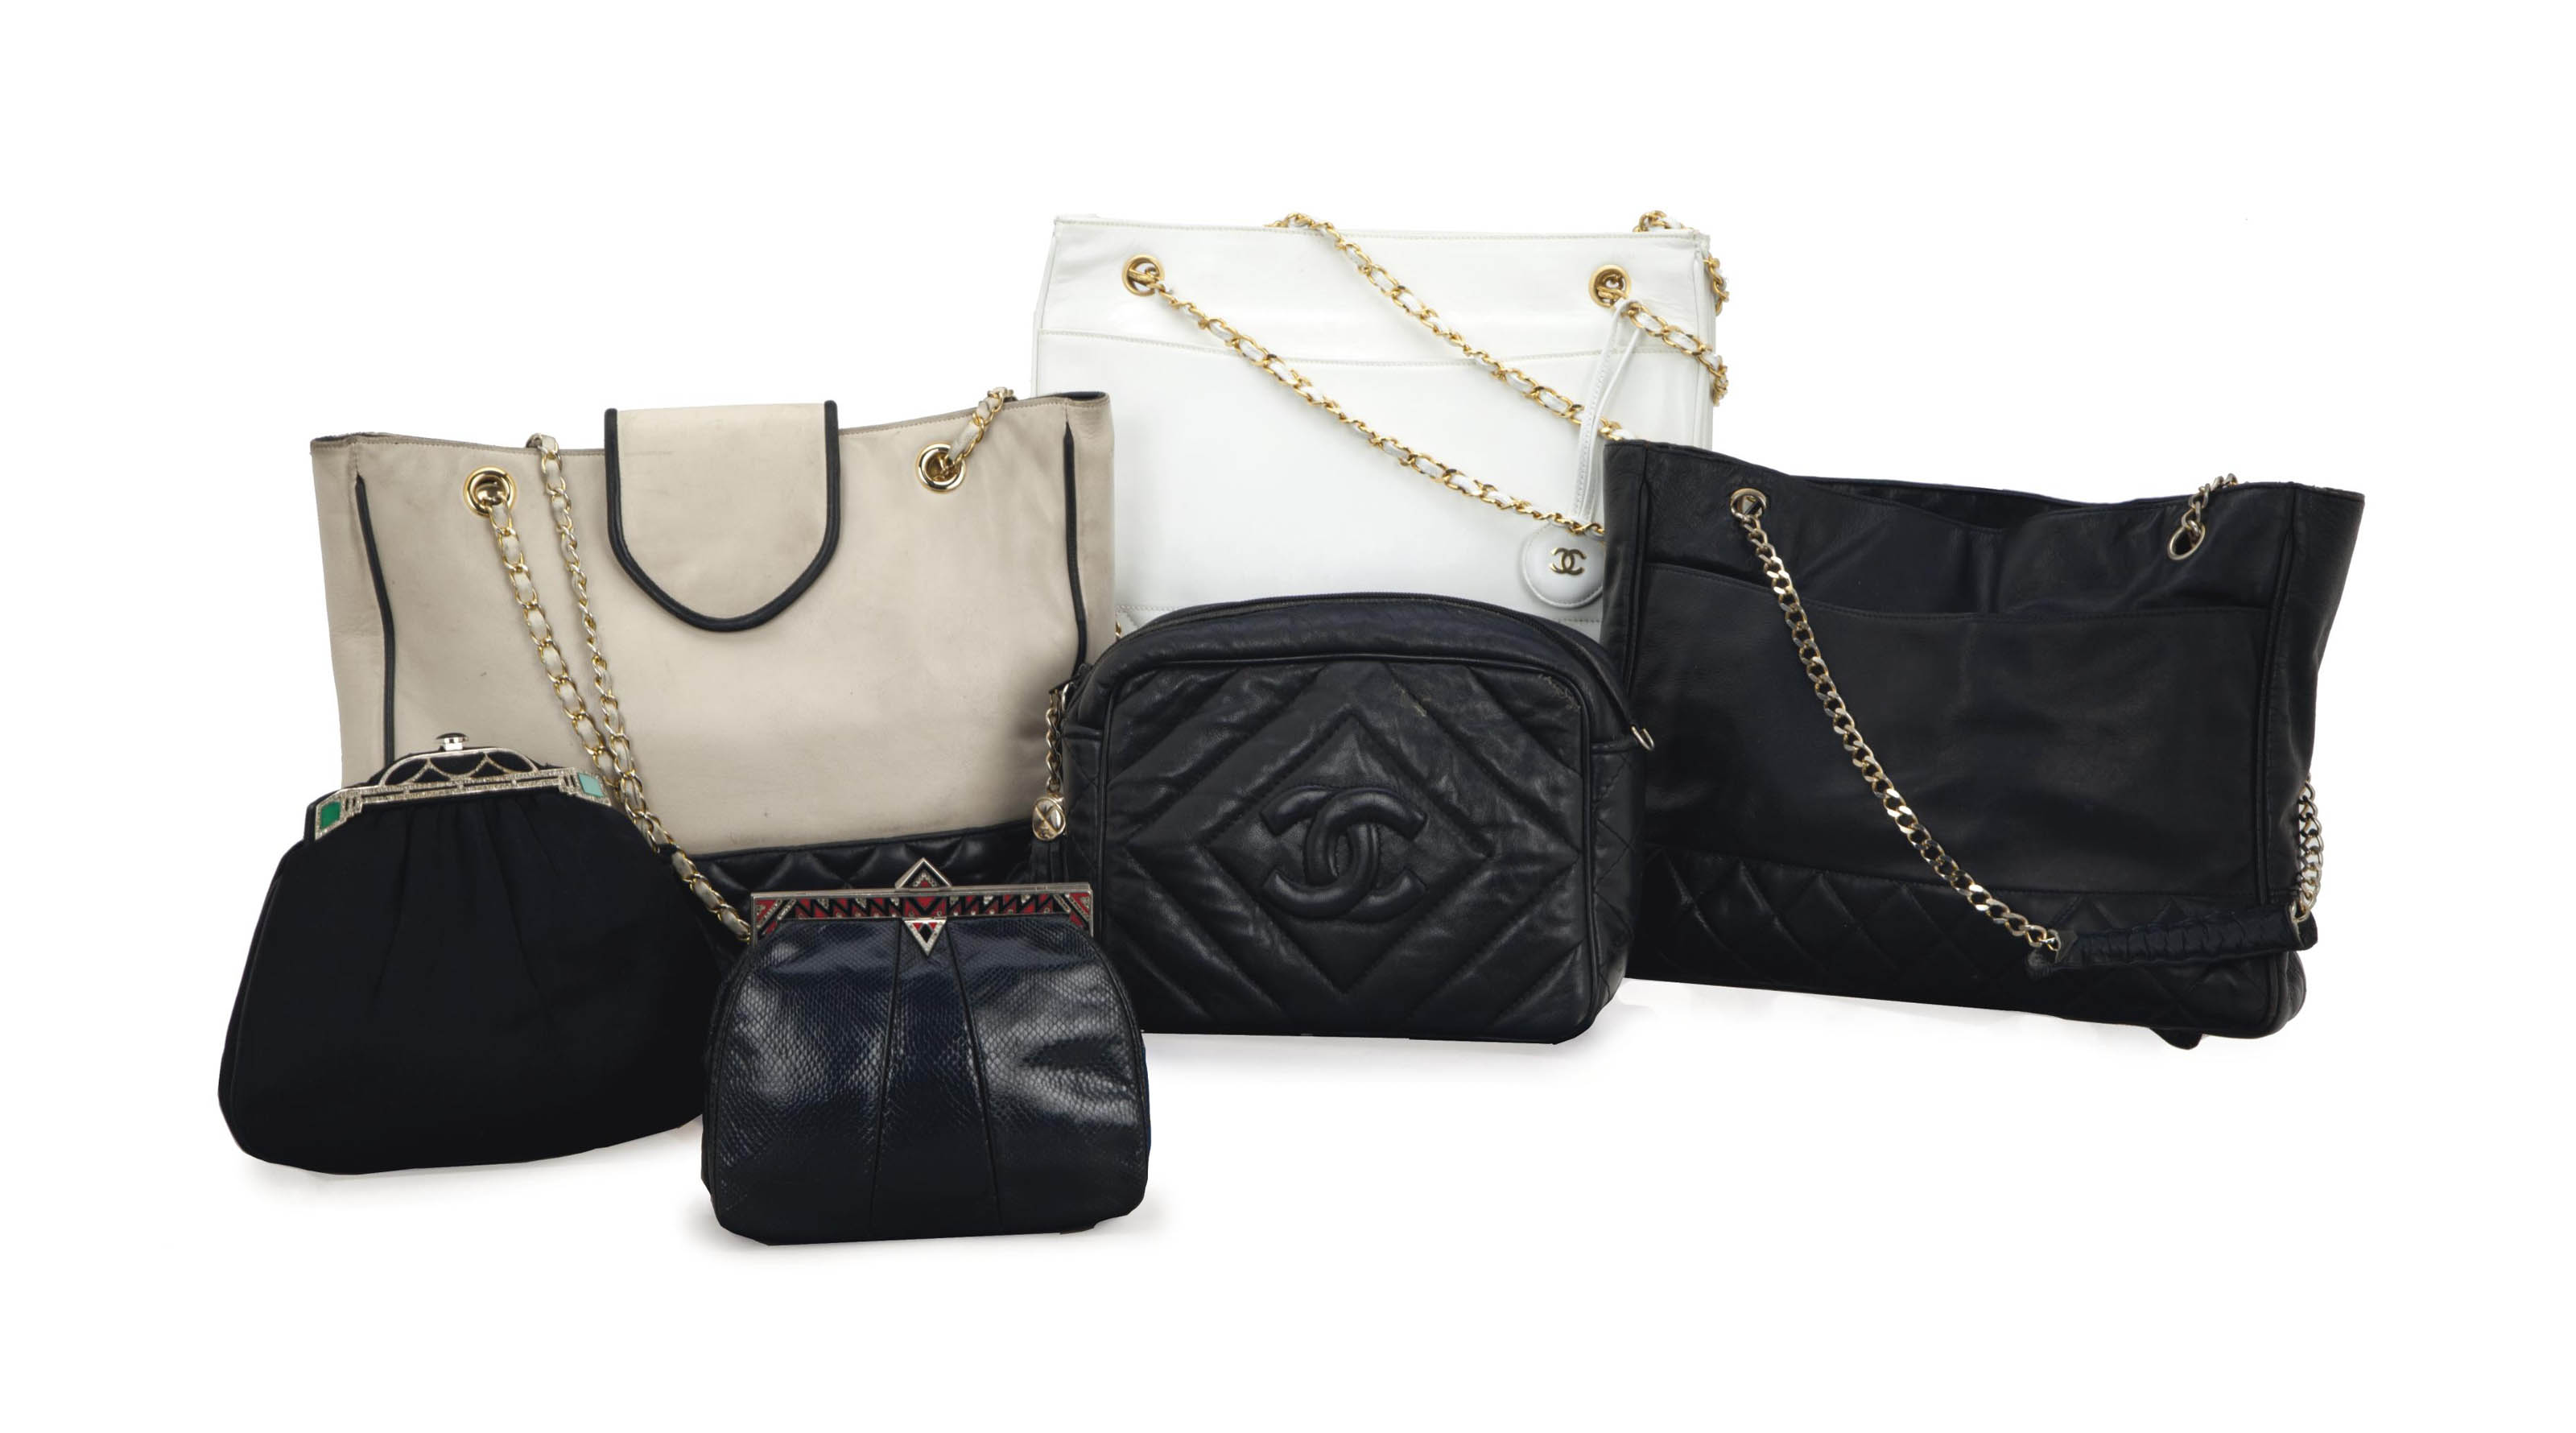 TWO BLACK QUILTED-LEATHER HAND